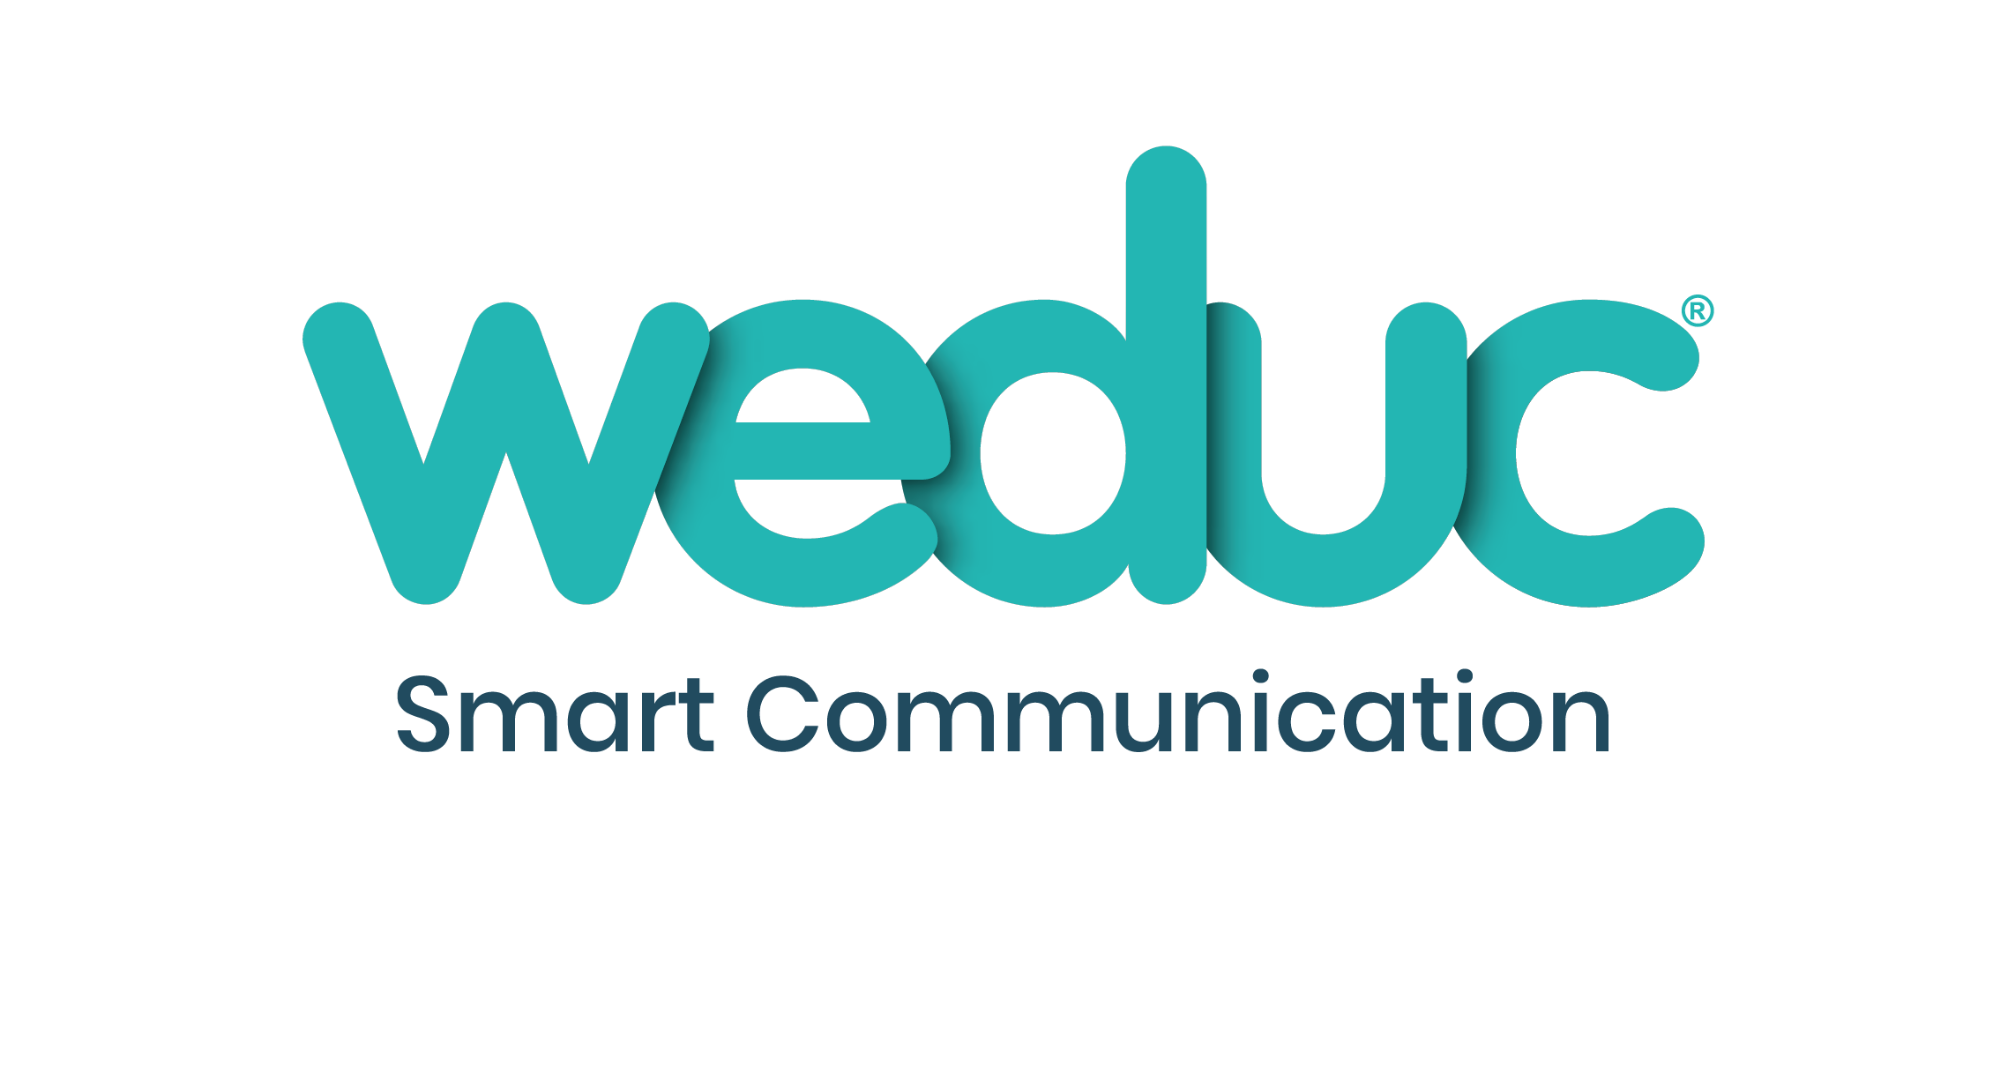 About Weduc